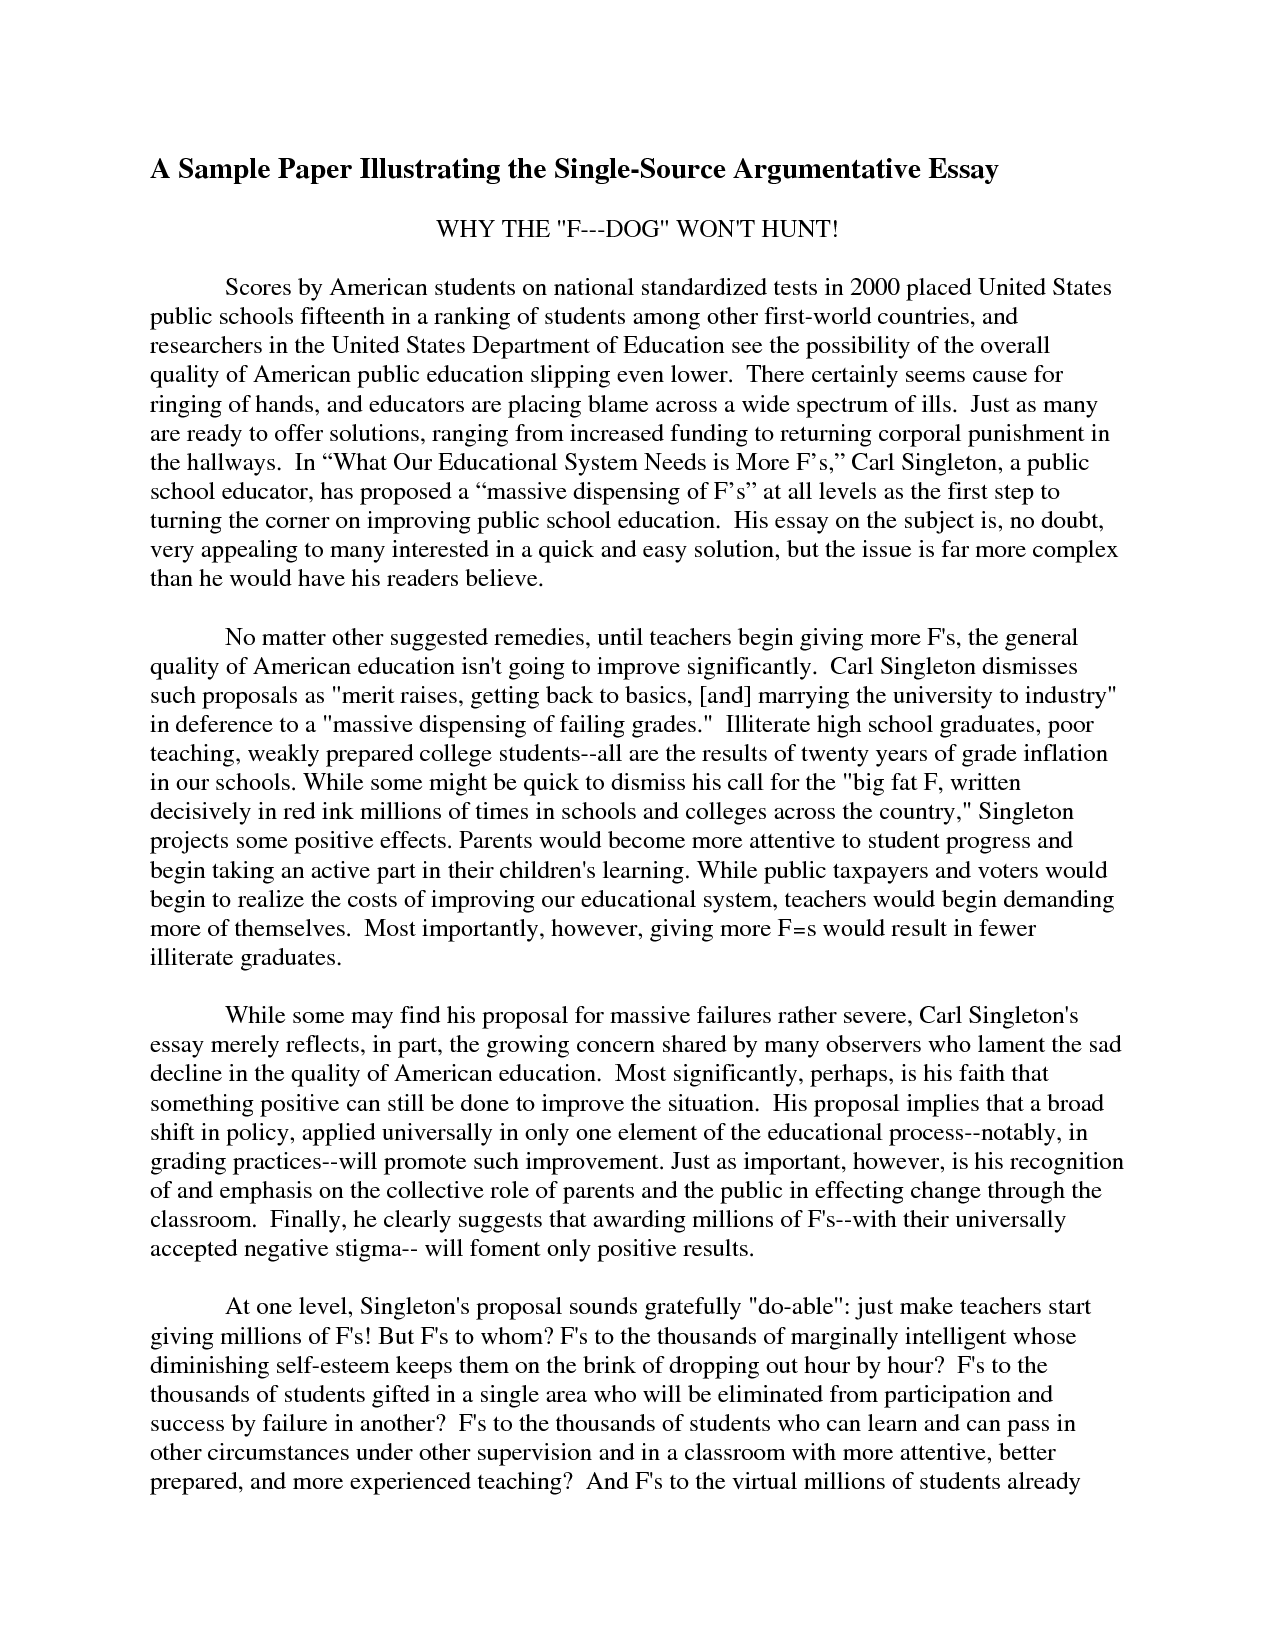 008 Fyvb2pmxix Argumentative Essay Introductions Awesome Introduction Examples Middle School Format Full